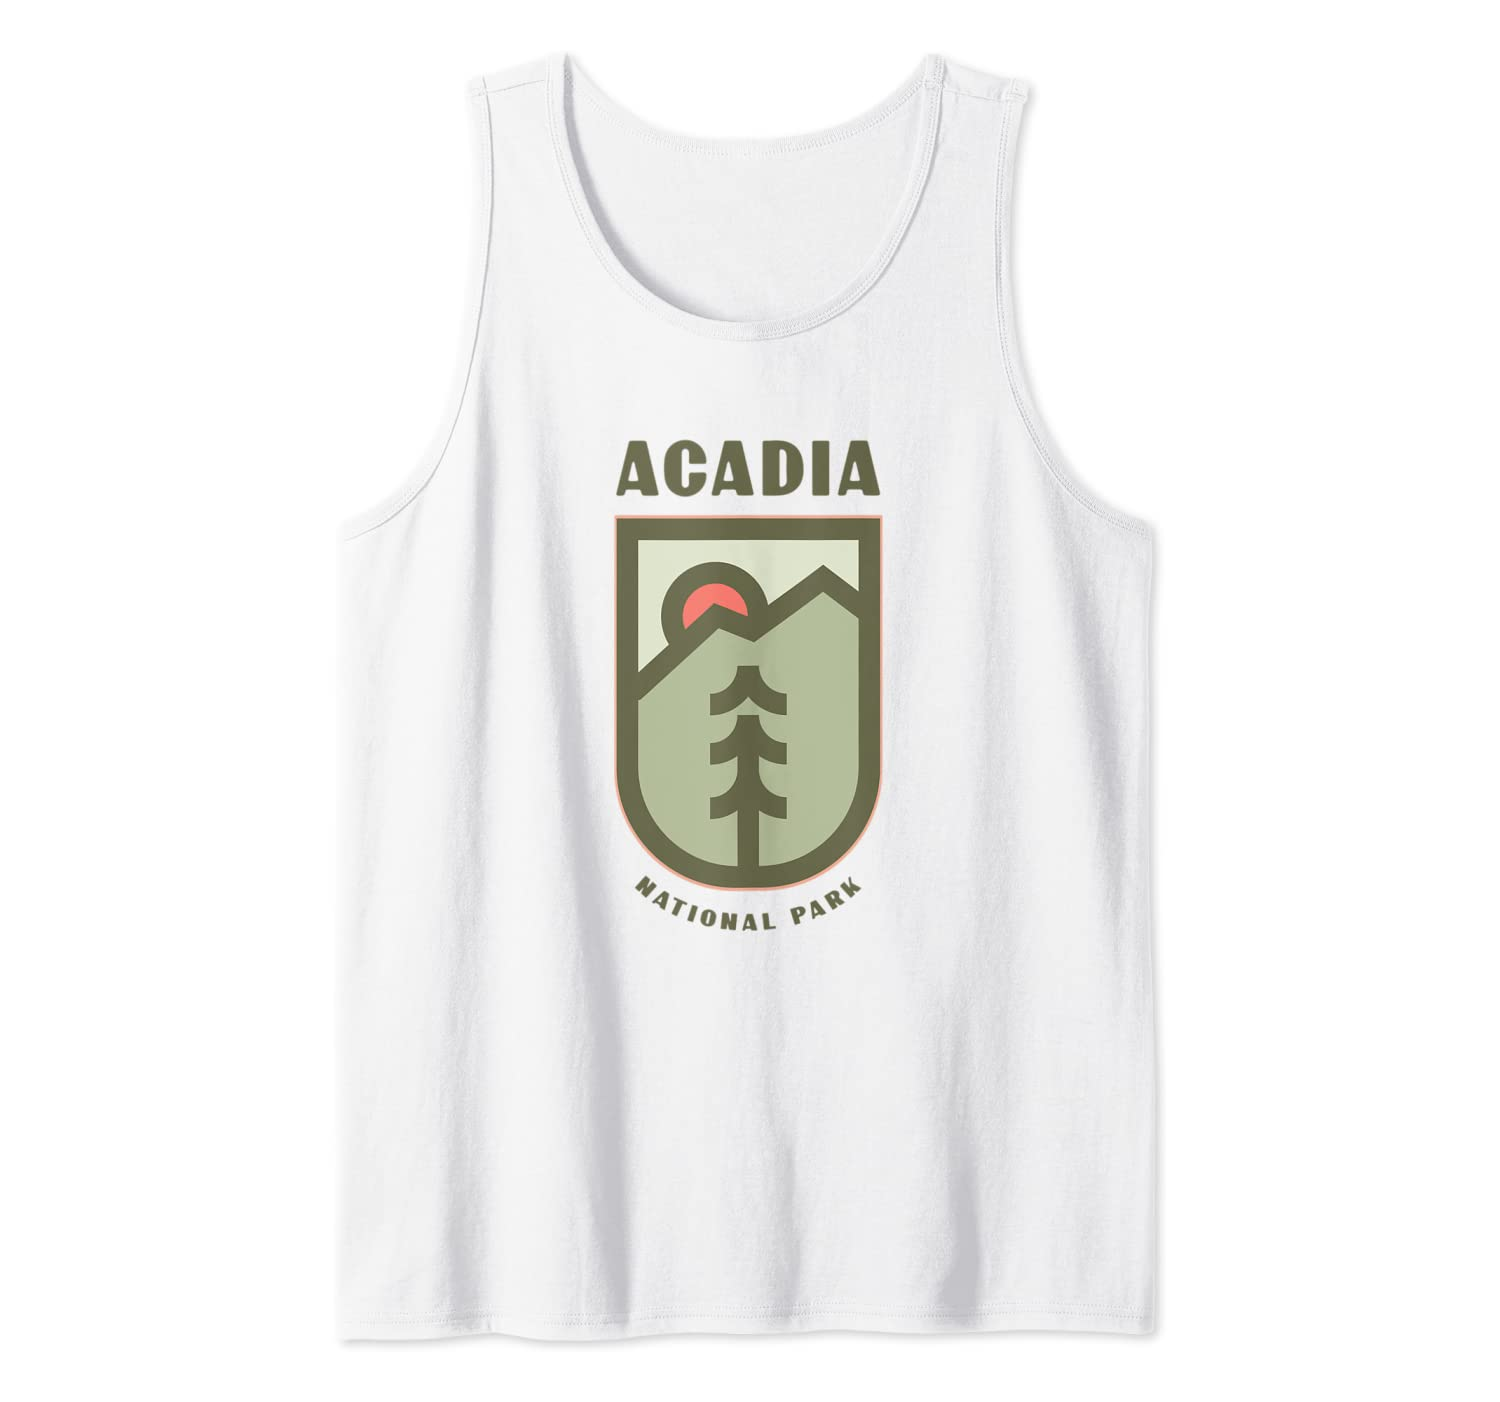 Family Vacation Gift - Acadia National Park Tank Top